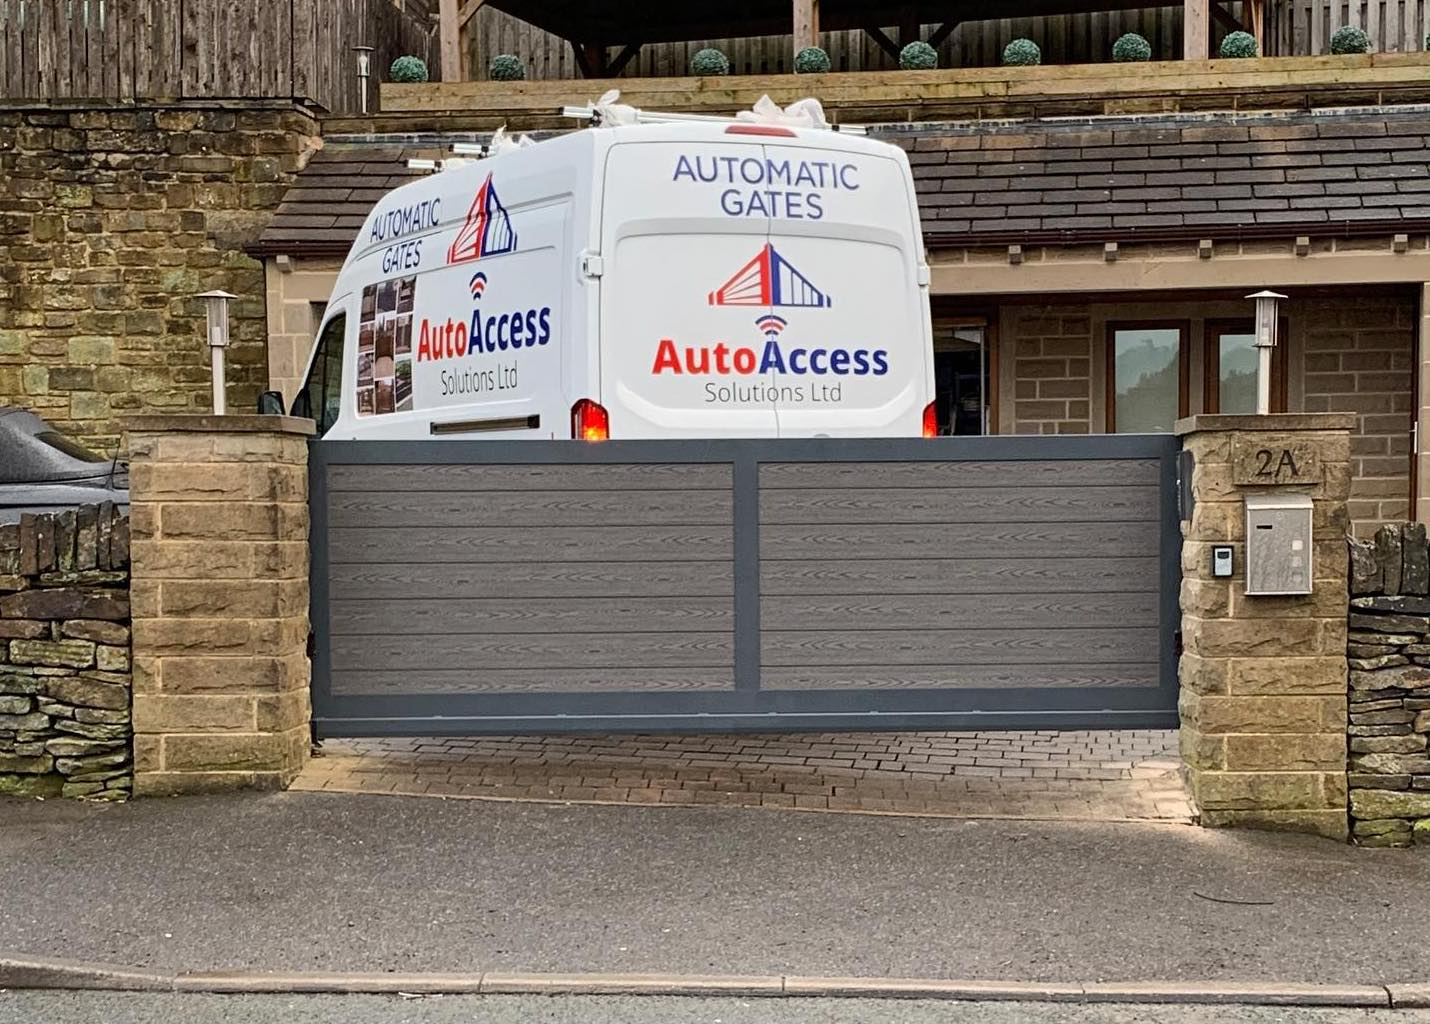 Automatic gates: what happens to my gate if the power goes off?